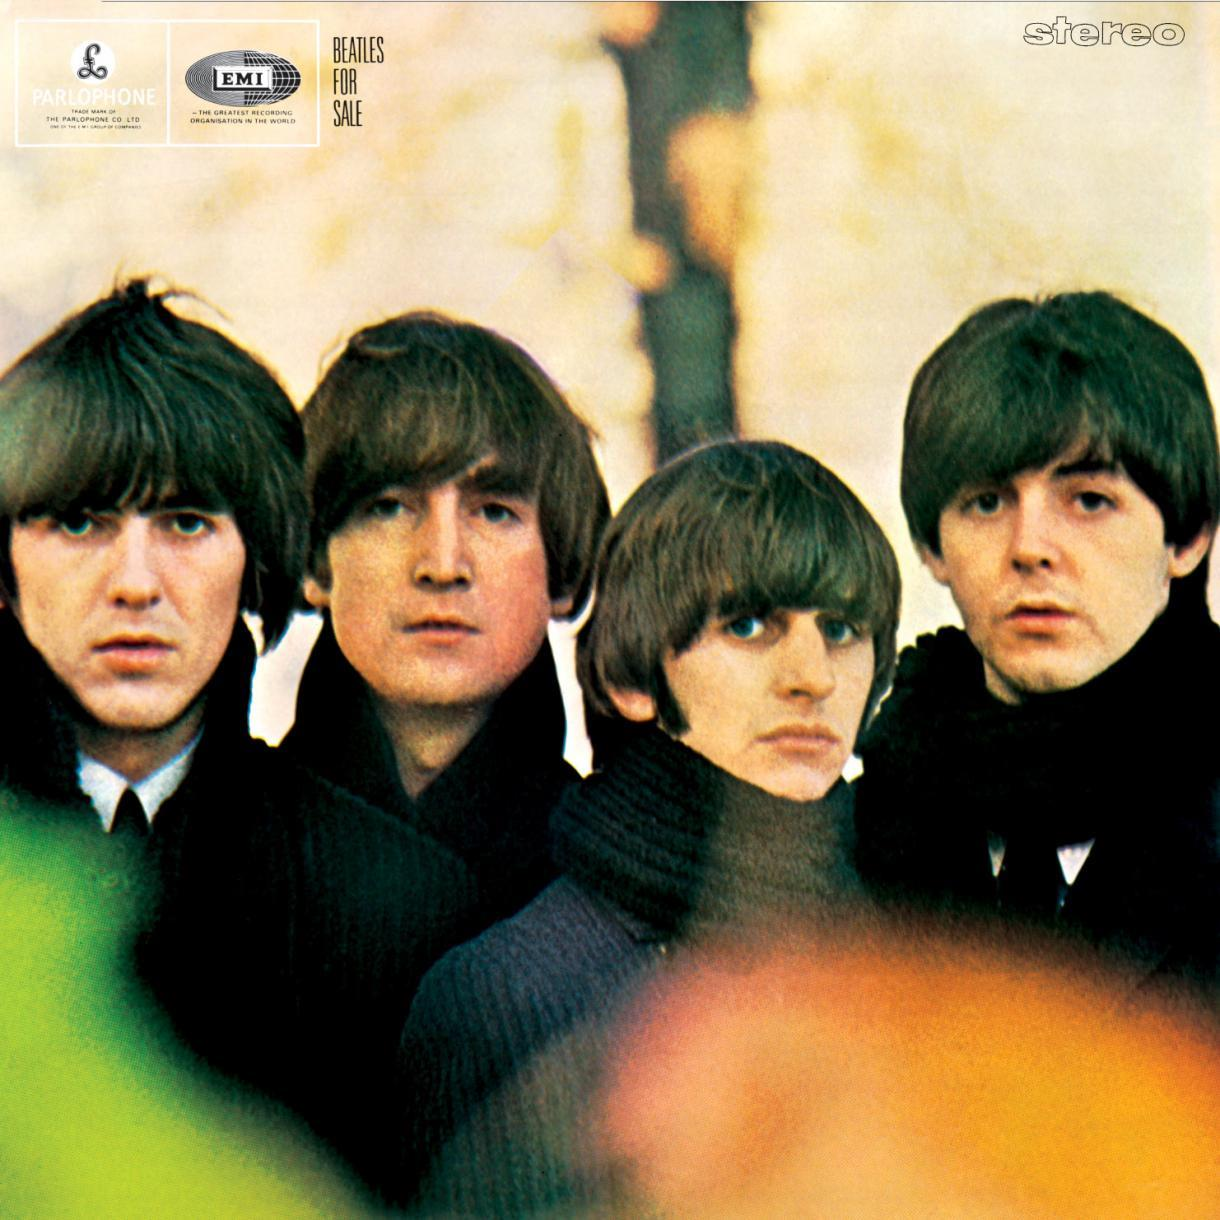 946 3824141 EMI  Beatles Beatles For Sale (Remaster 2009) (LP)